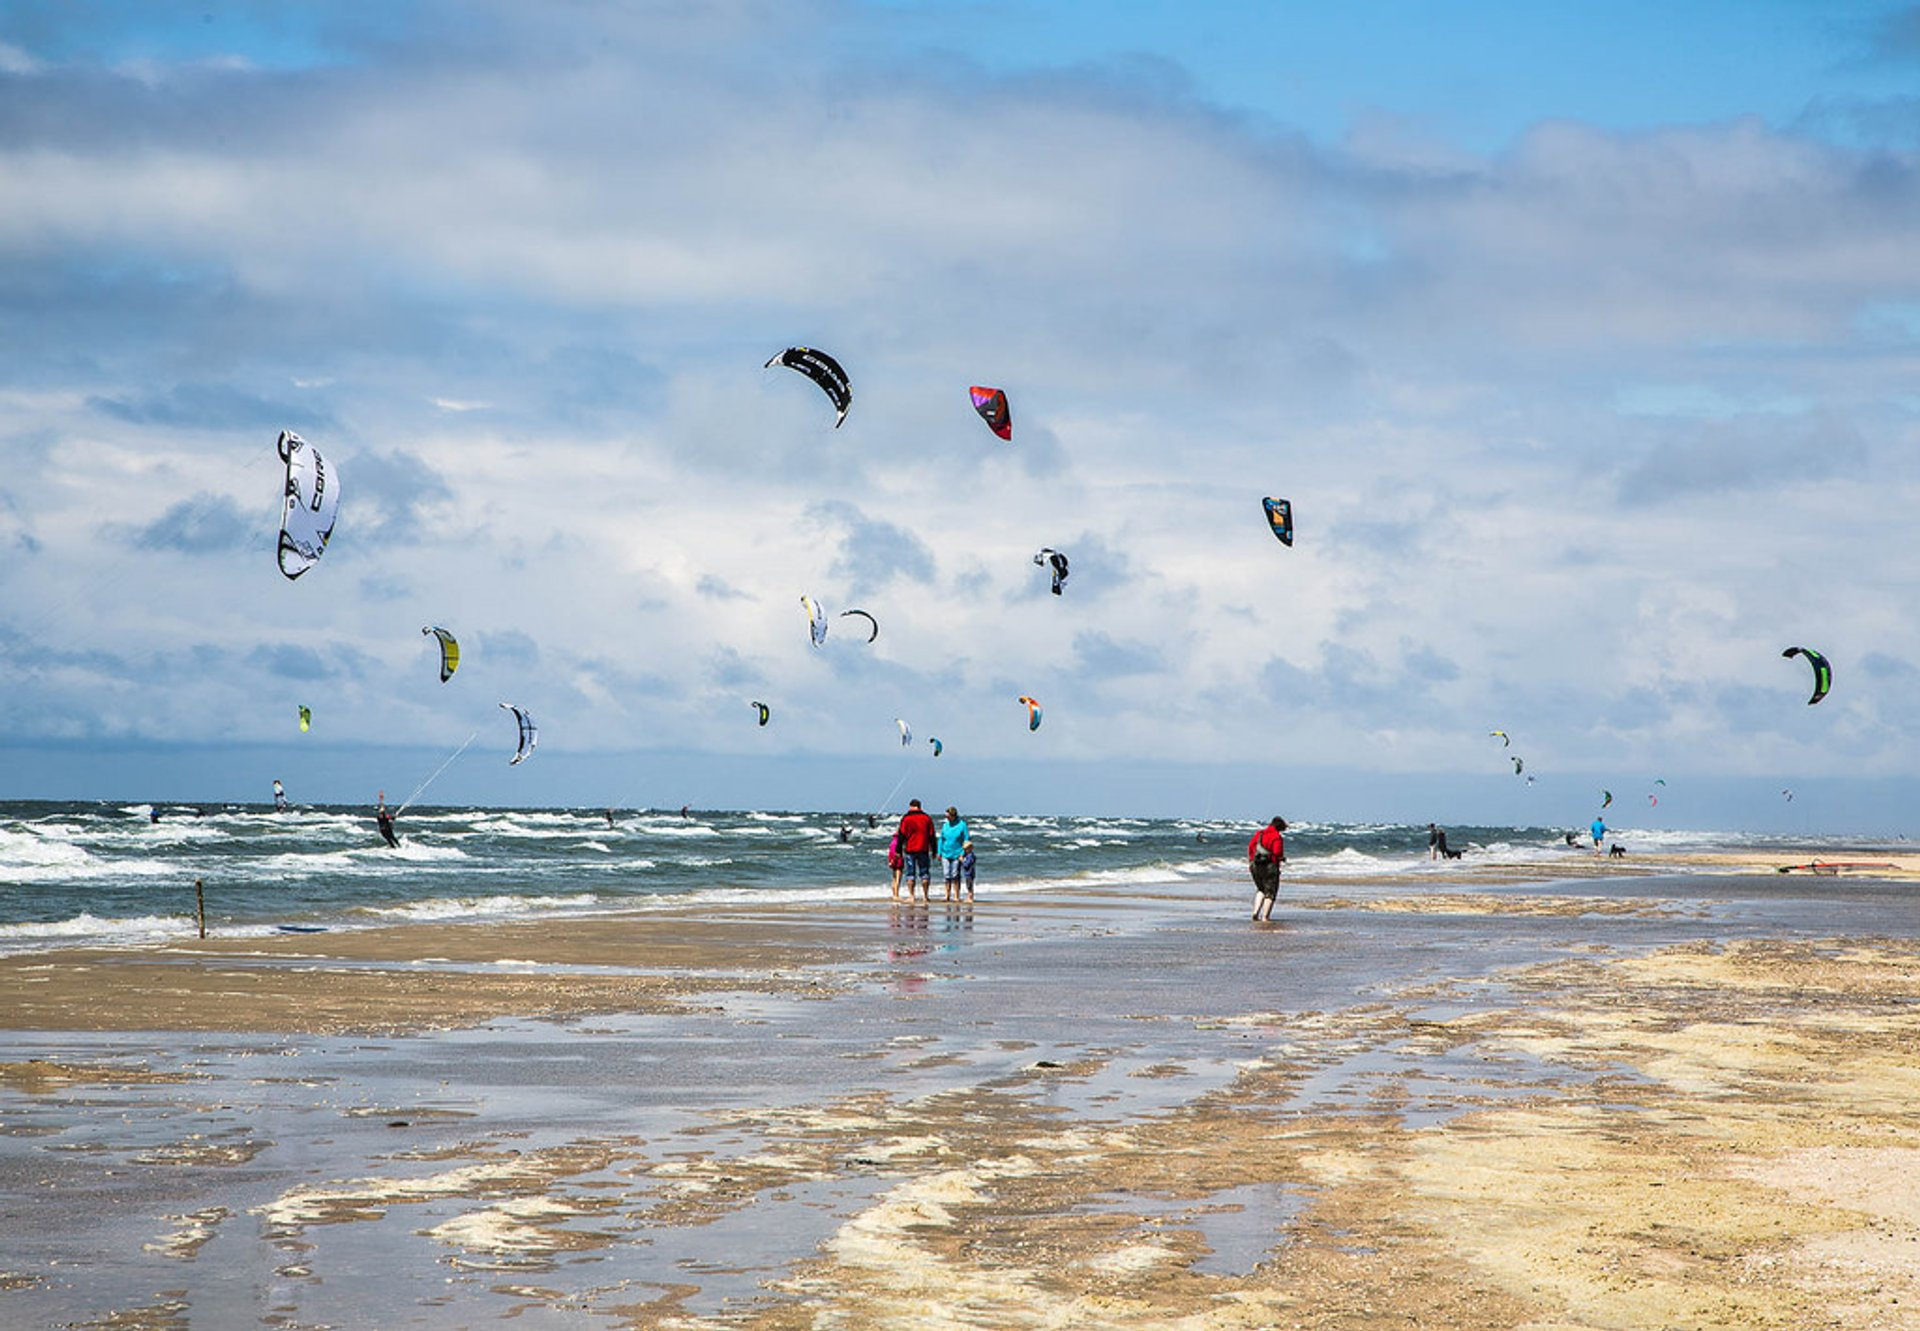 Kitesurfing and Windsurfing in Denmark 2020 - Best Time